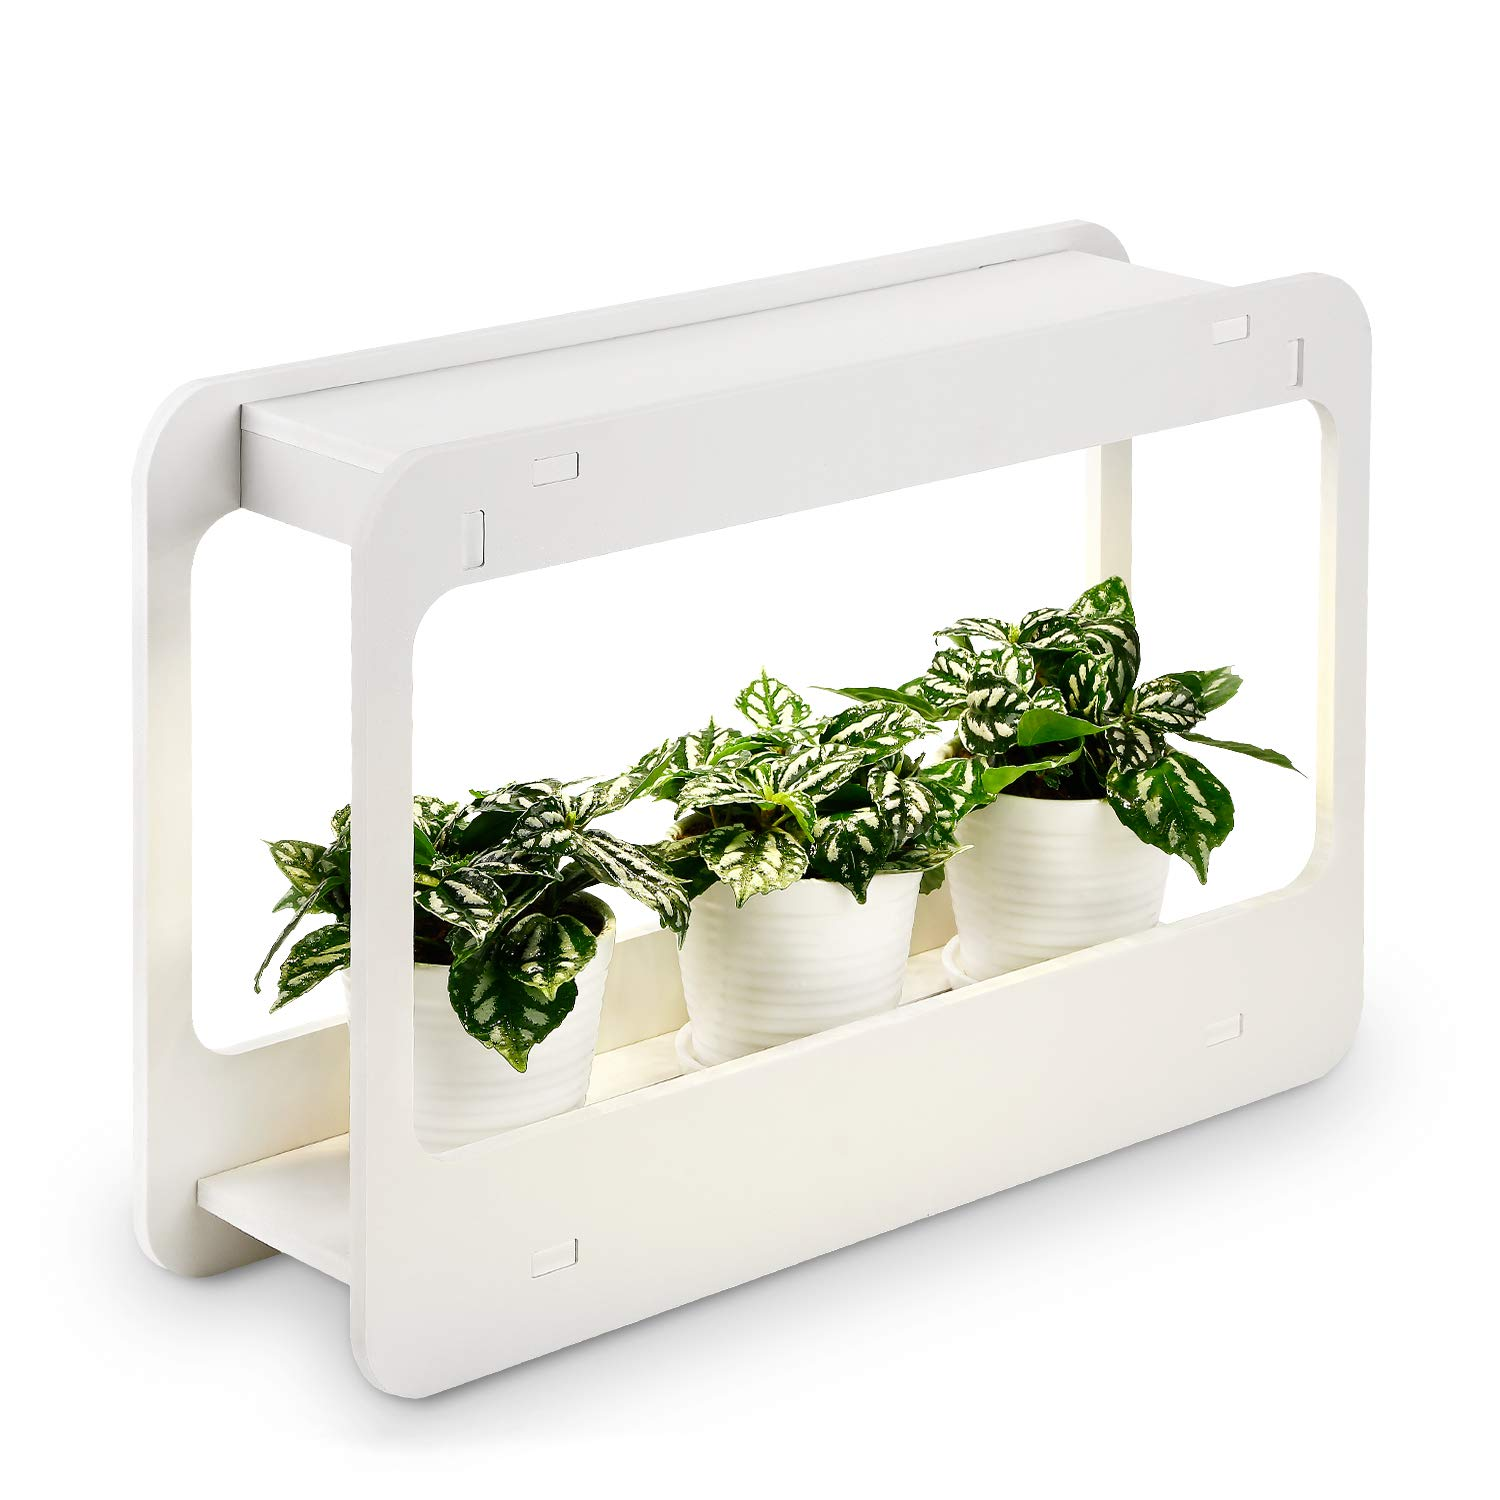 TORCHSTAR Plant Grow LED Light Kit, Indoor Herb Garden with Timer Function,  24V Low Voltage, Indoor Harvest Elite for Gourmet or Plant Enthusiasts,